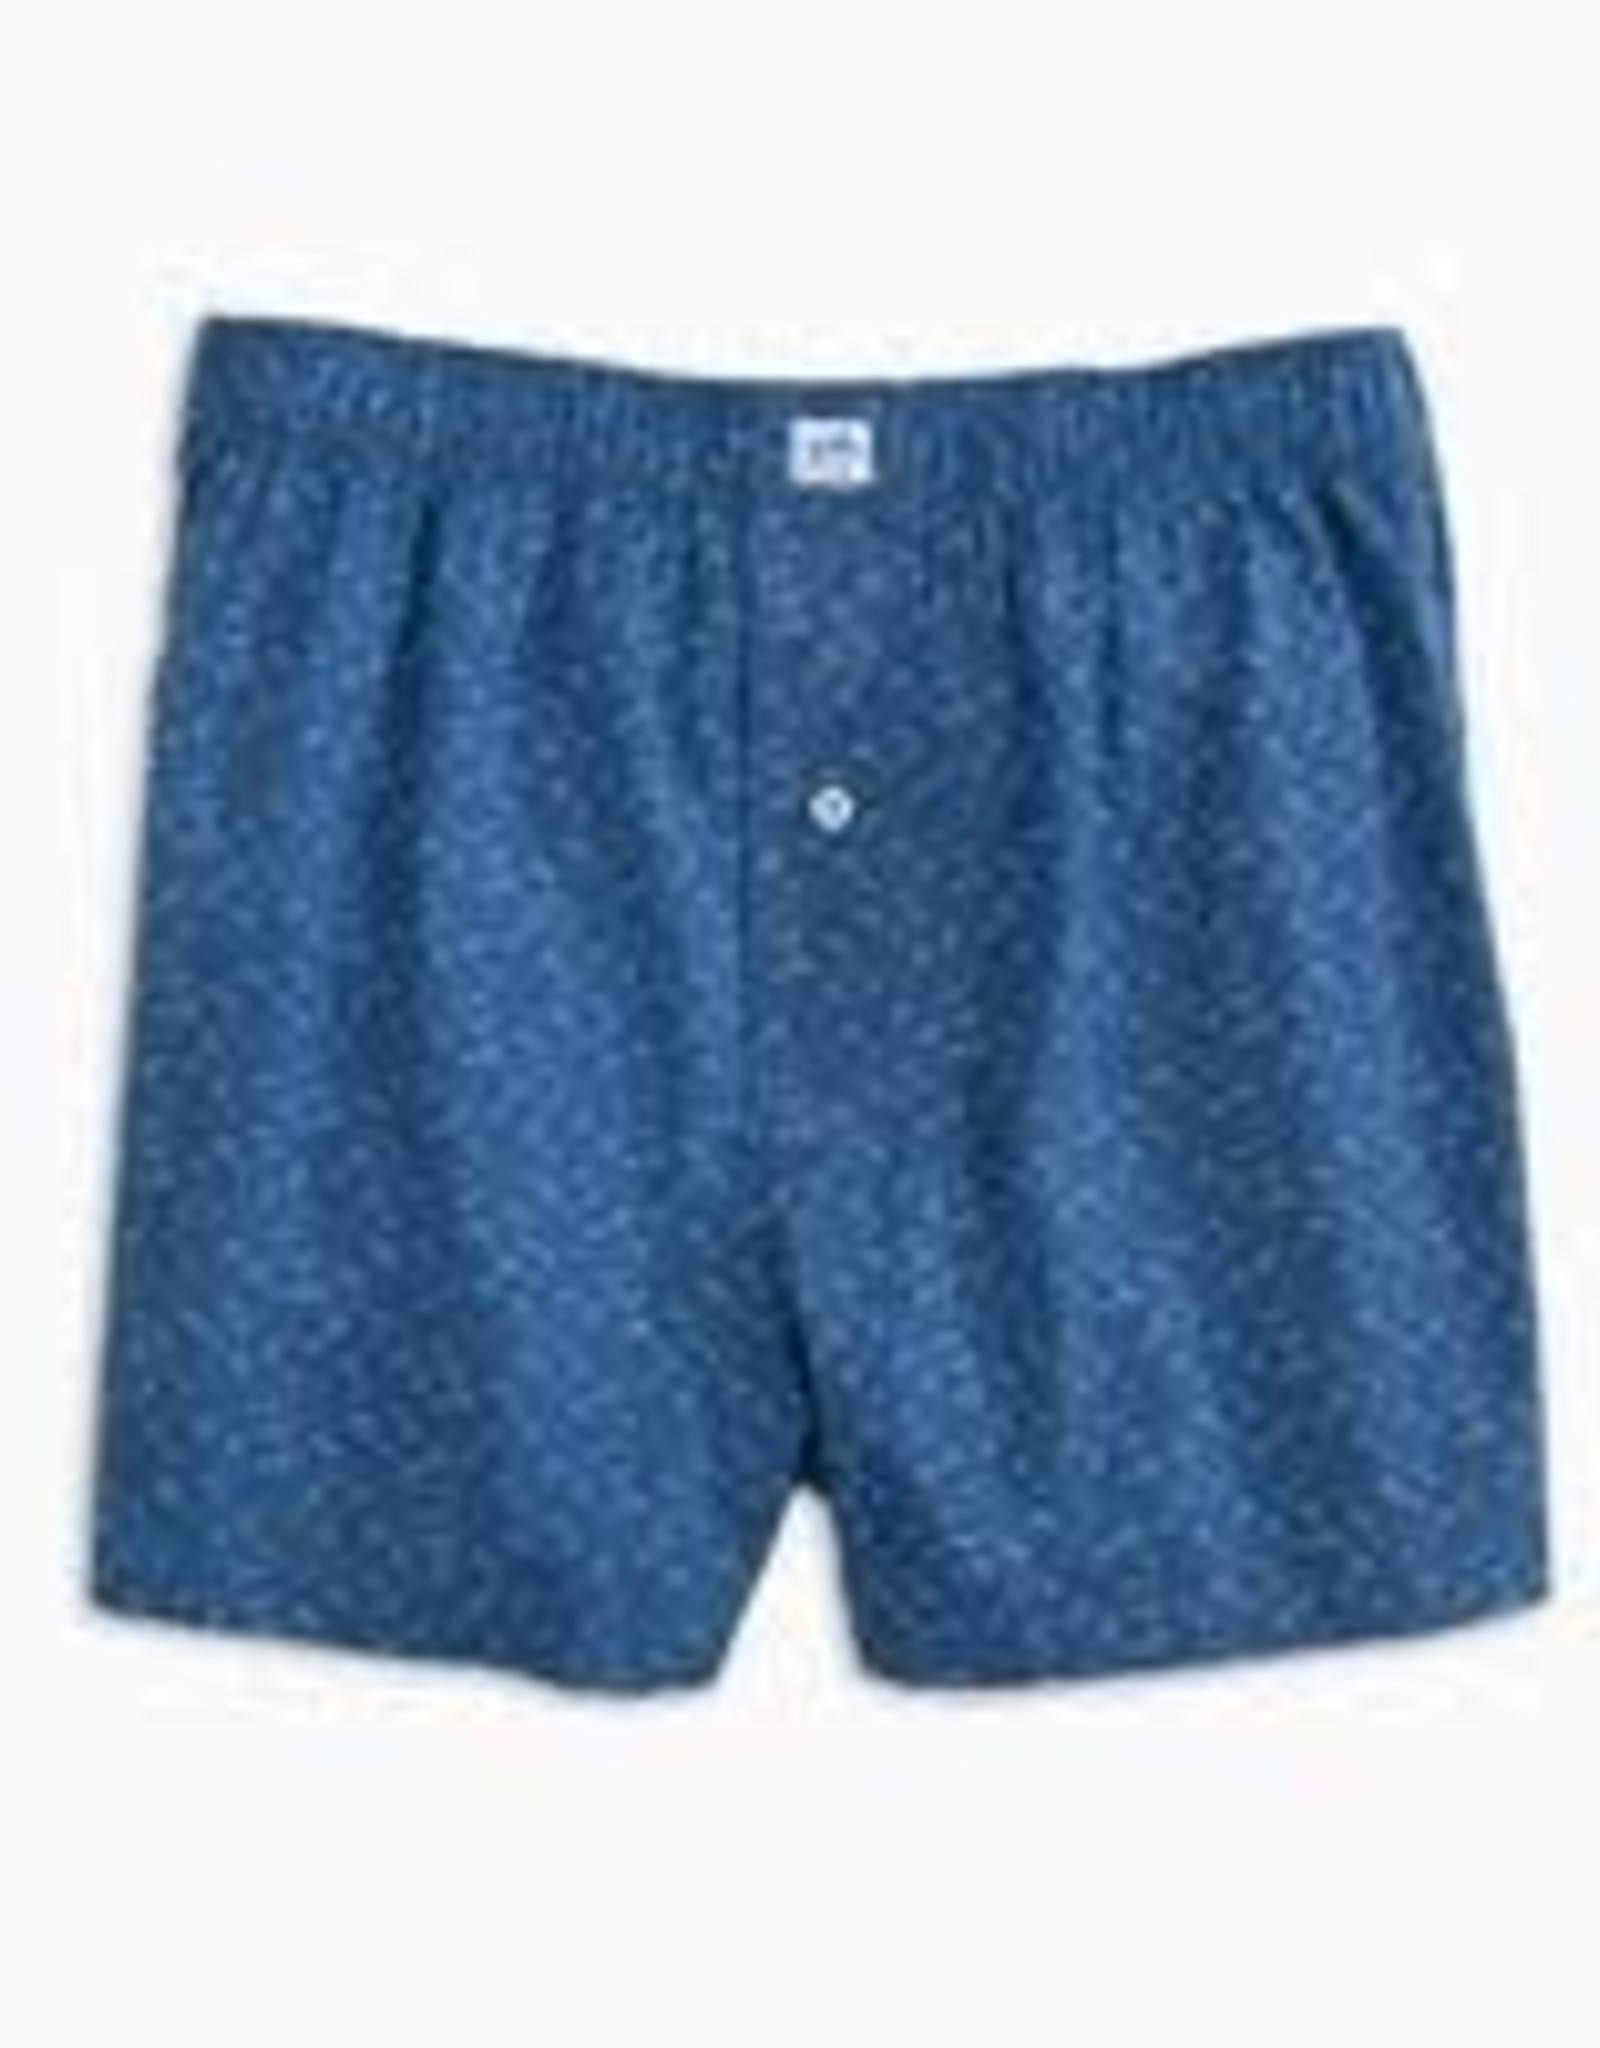 Southern Tide Waterway Boxers